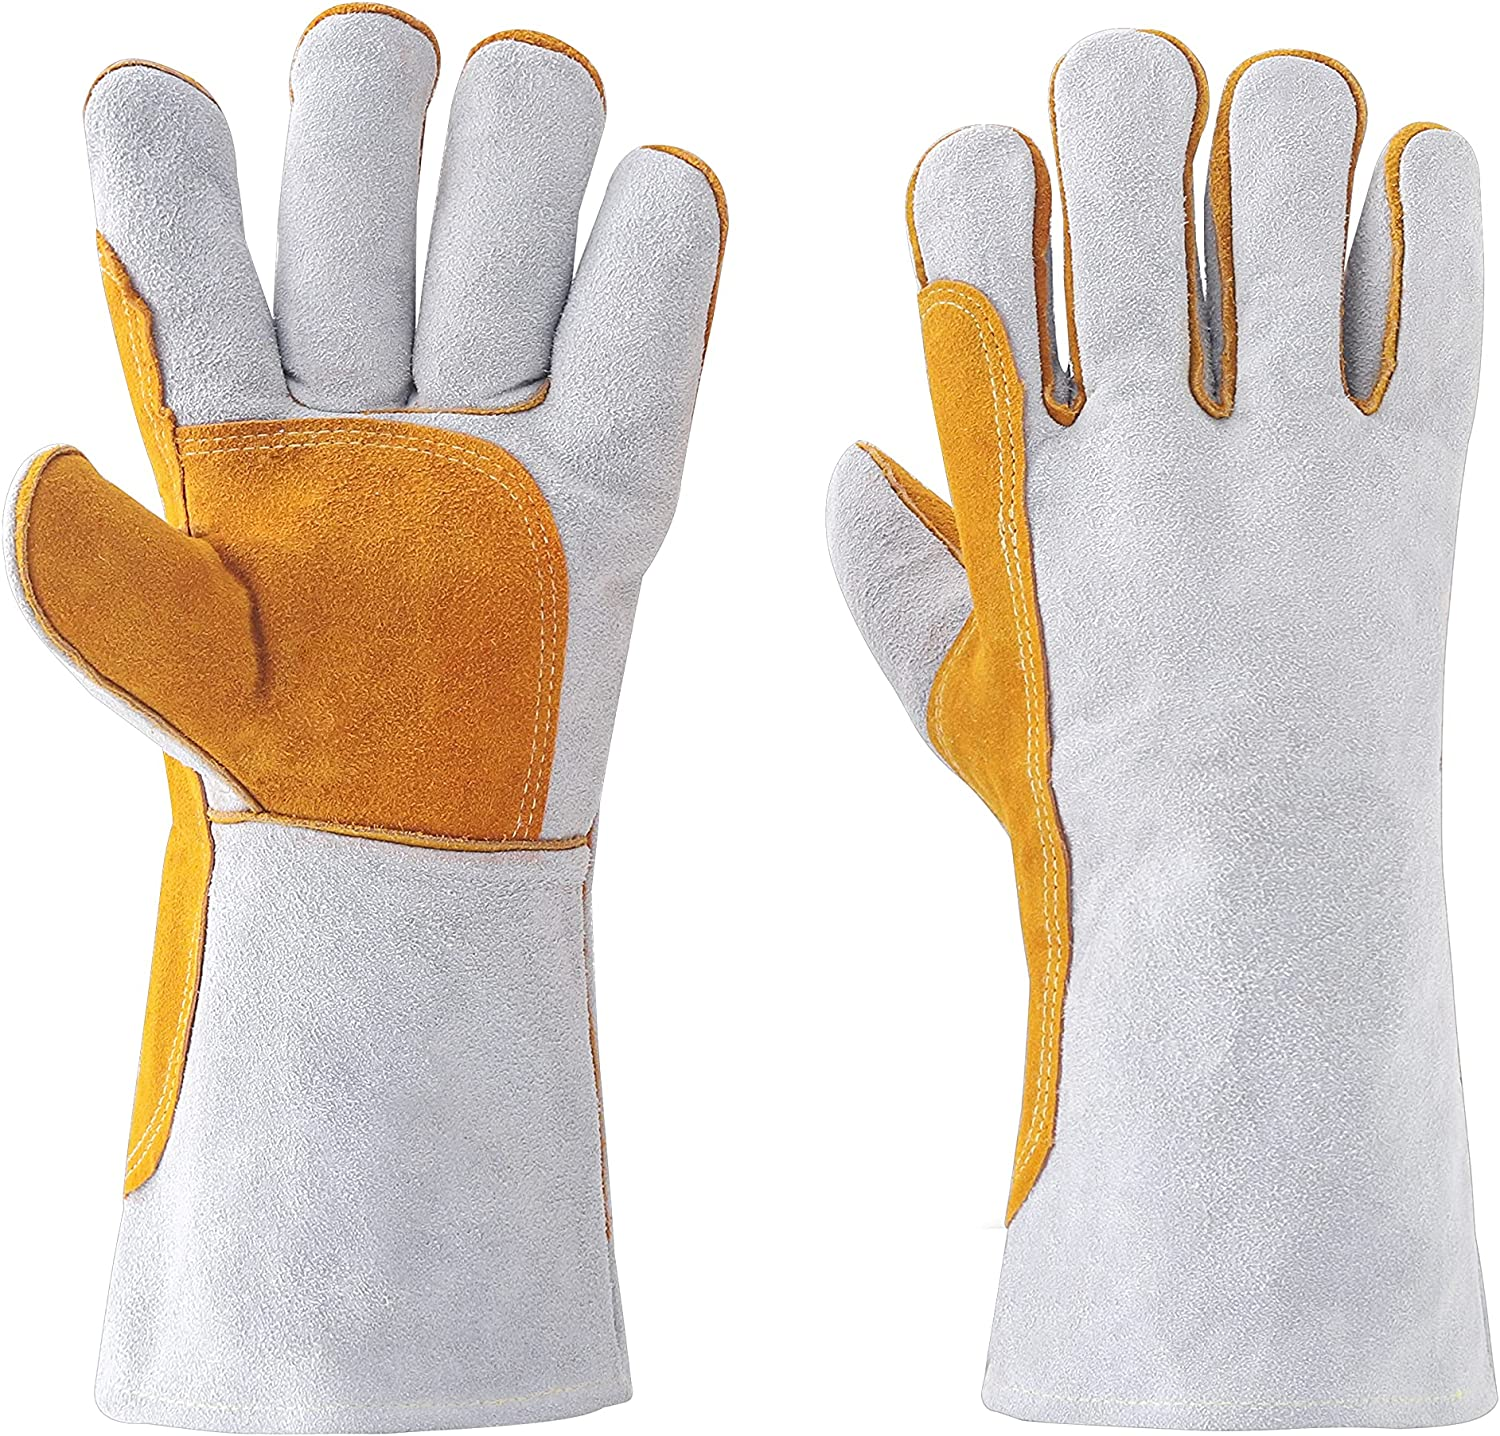 Leather Super beauty product restock quality top! Forge Mig Popular shop is the lowest price challenge Stick Welding Gloves Heat Resistant Fire Mitt